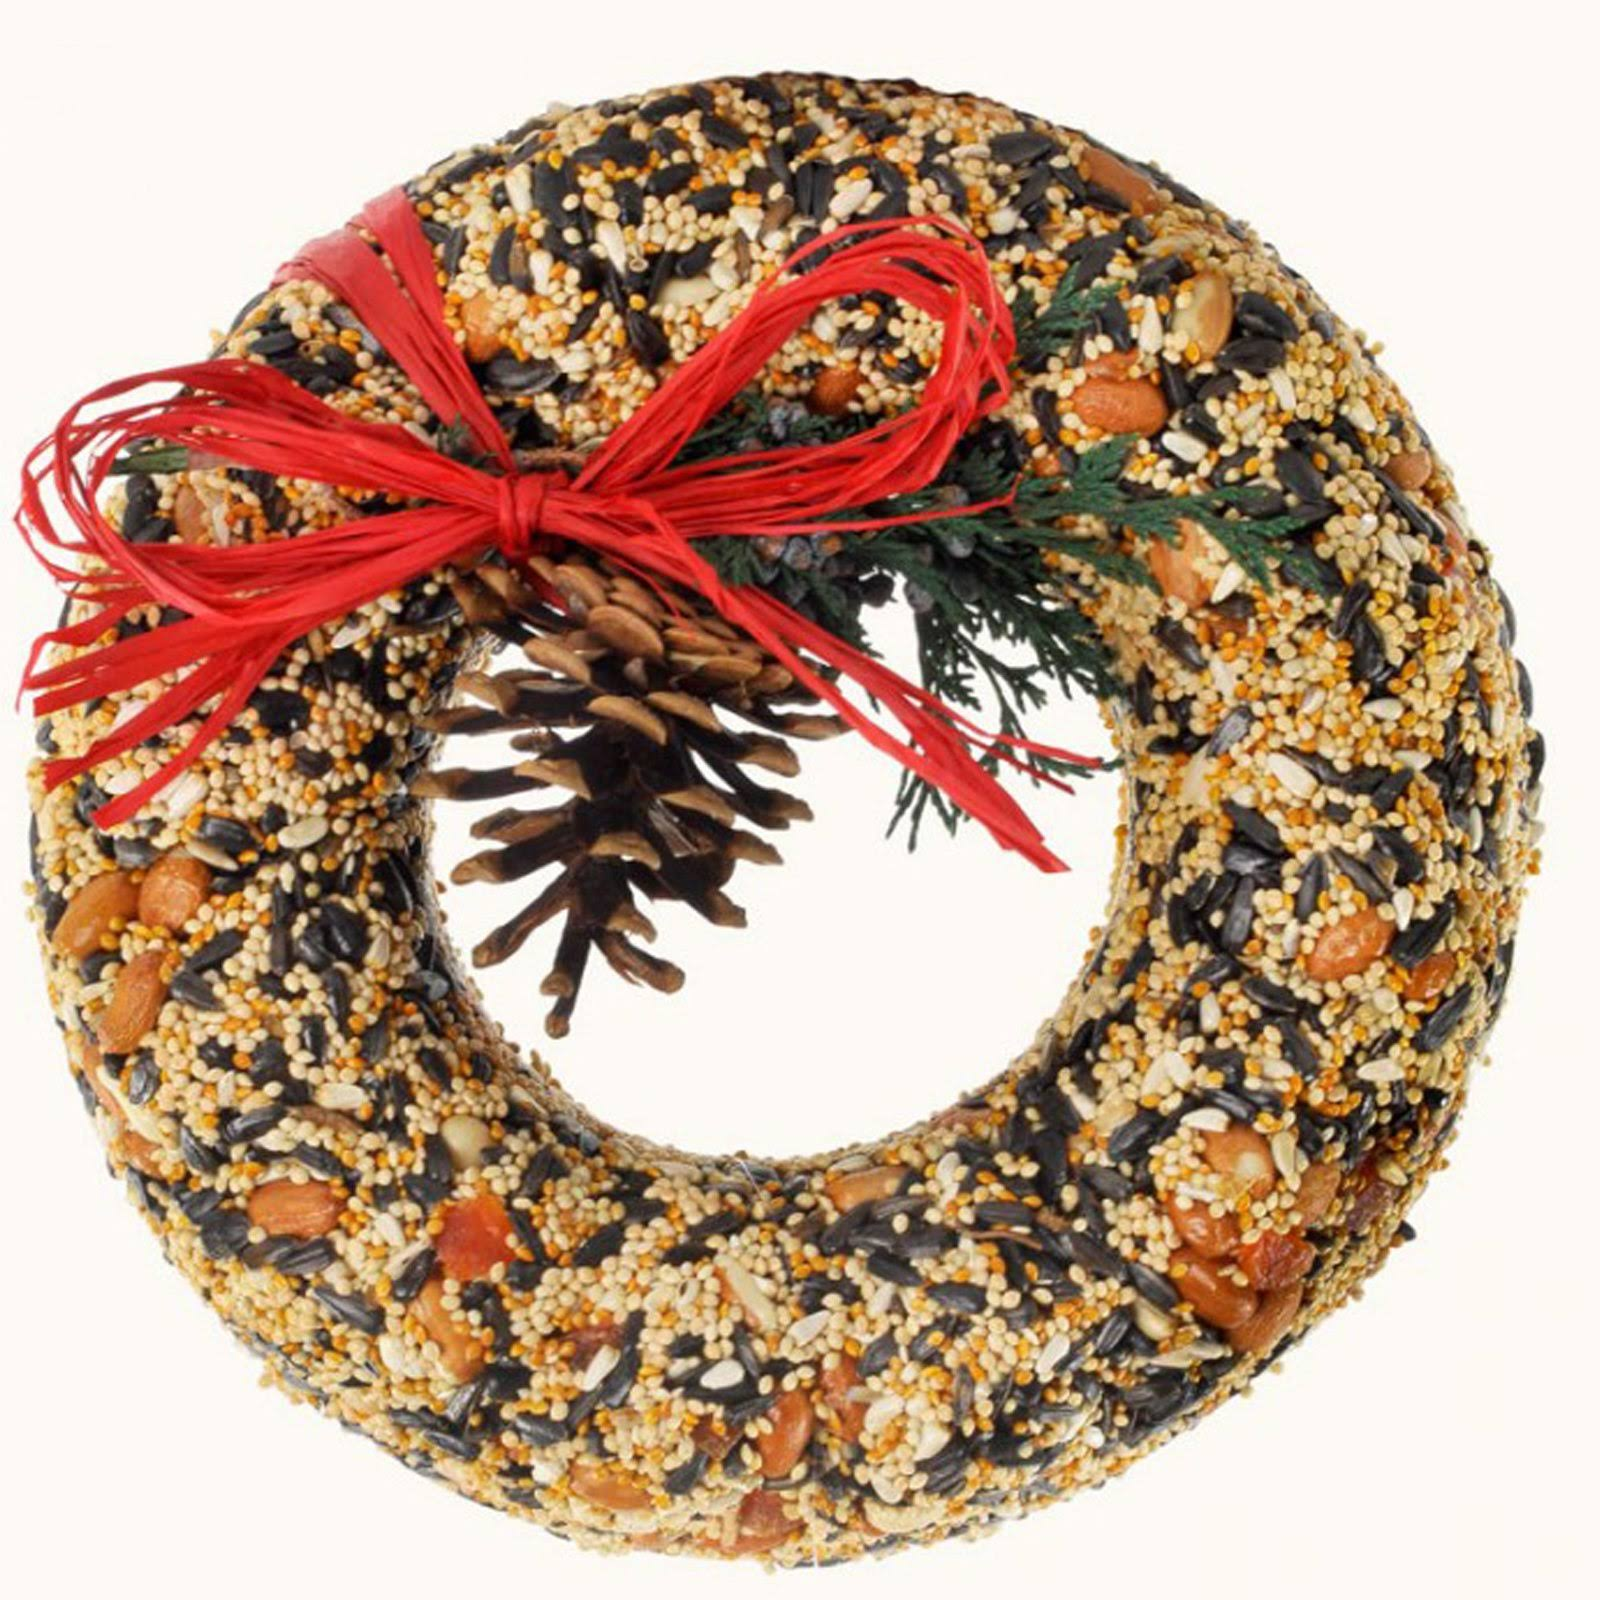 Mr. Bird Birdseed Wreath